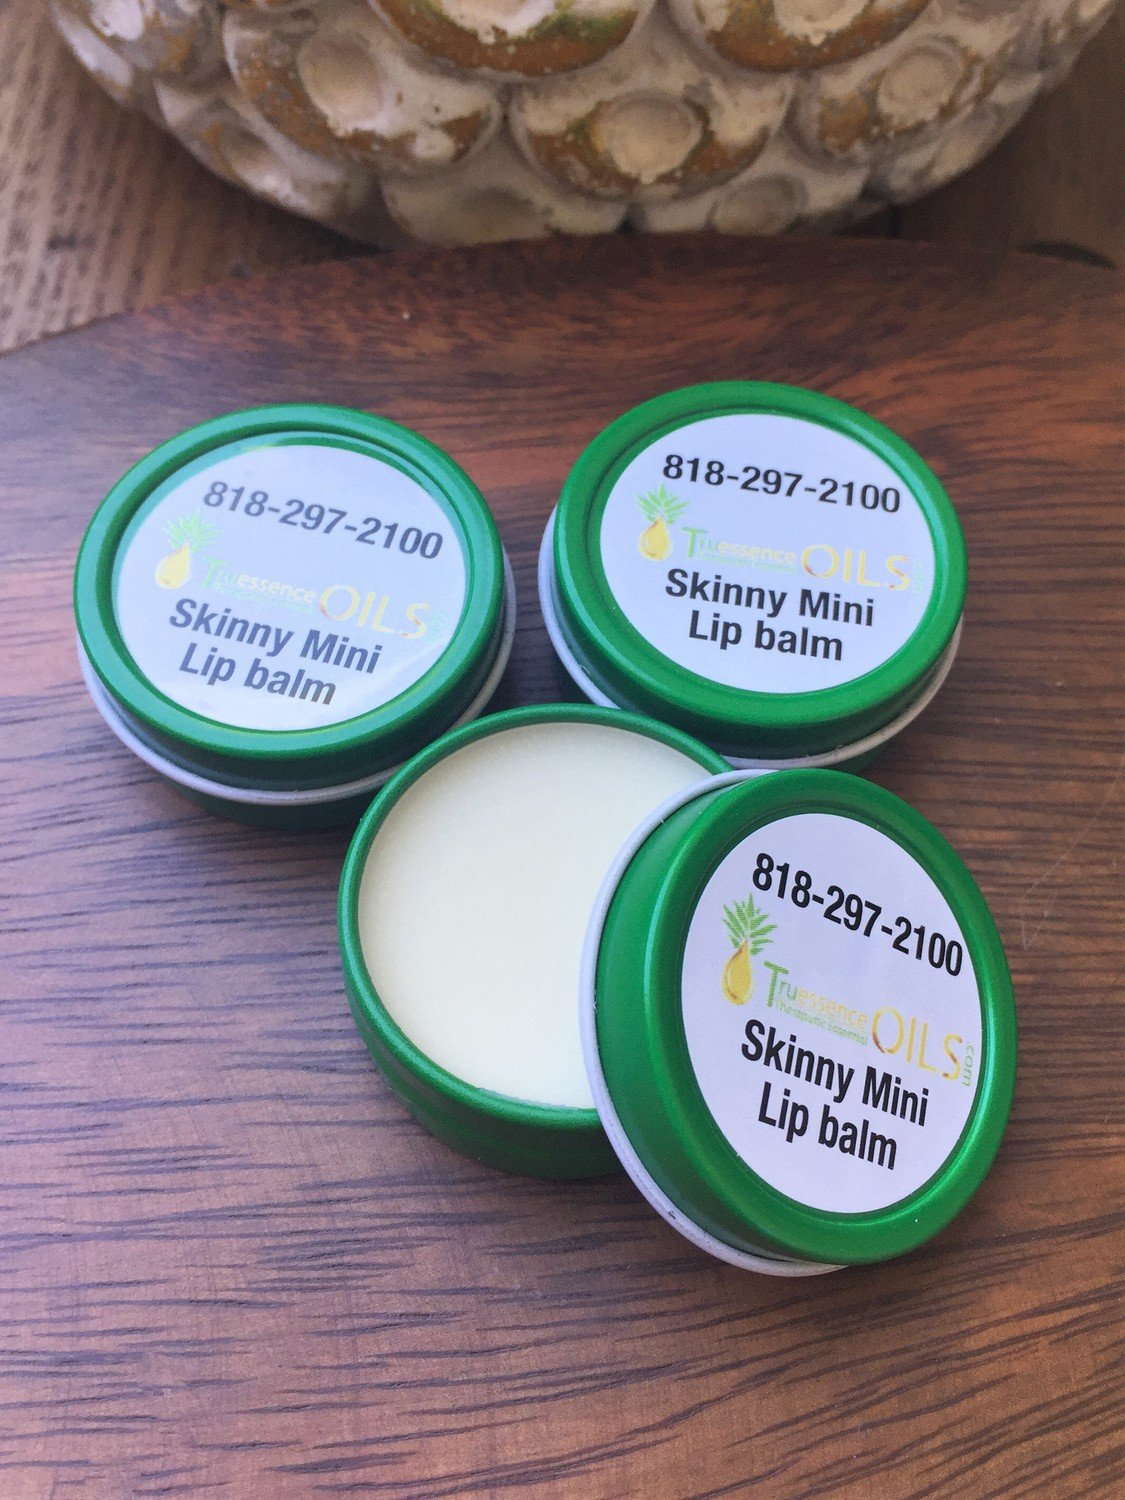 Skinny Mini Lip Balm